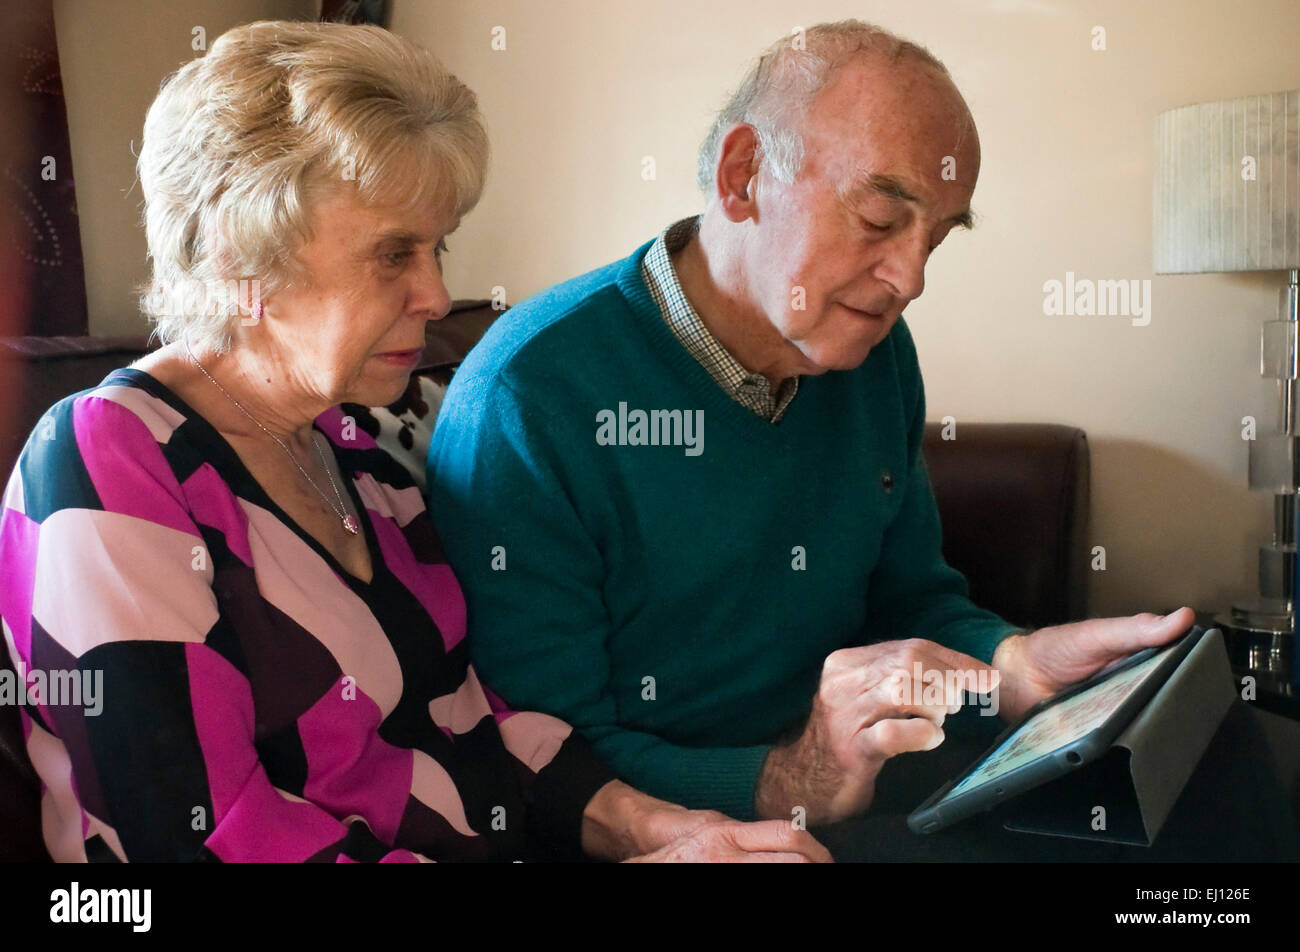 Horizontal portrait of an elderly couple using an ipad together. - Stock Image